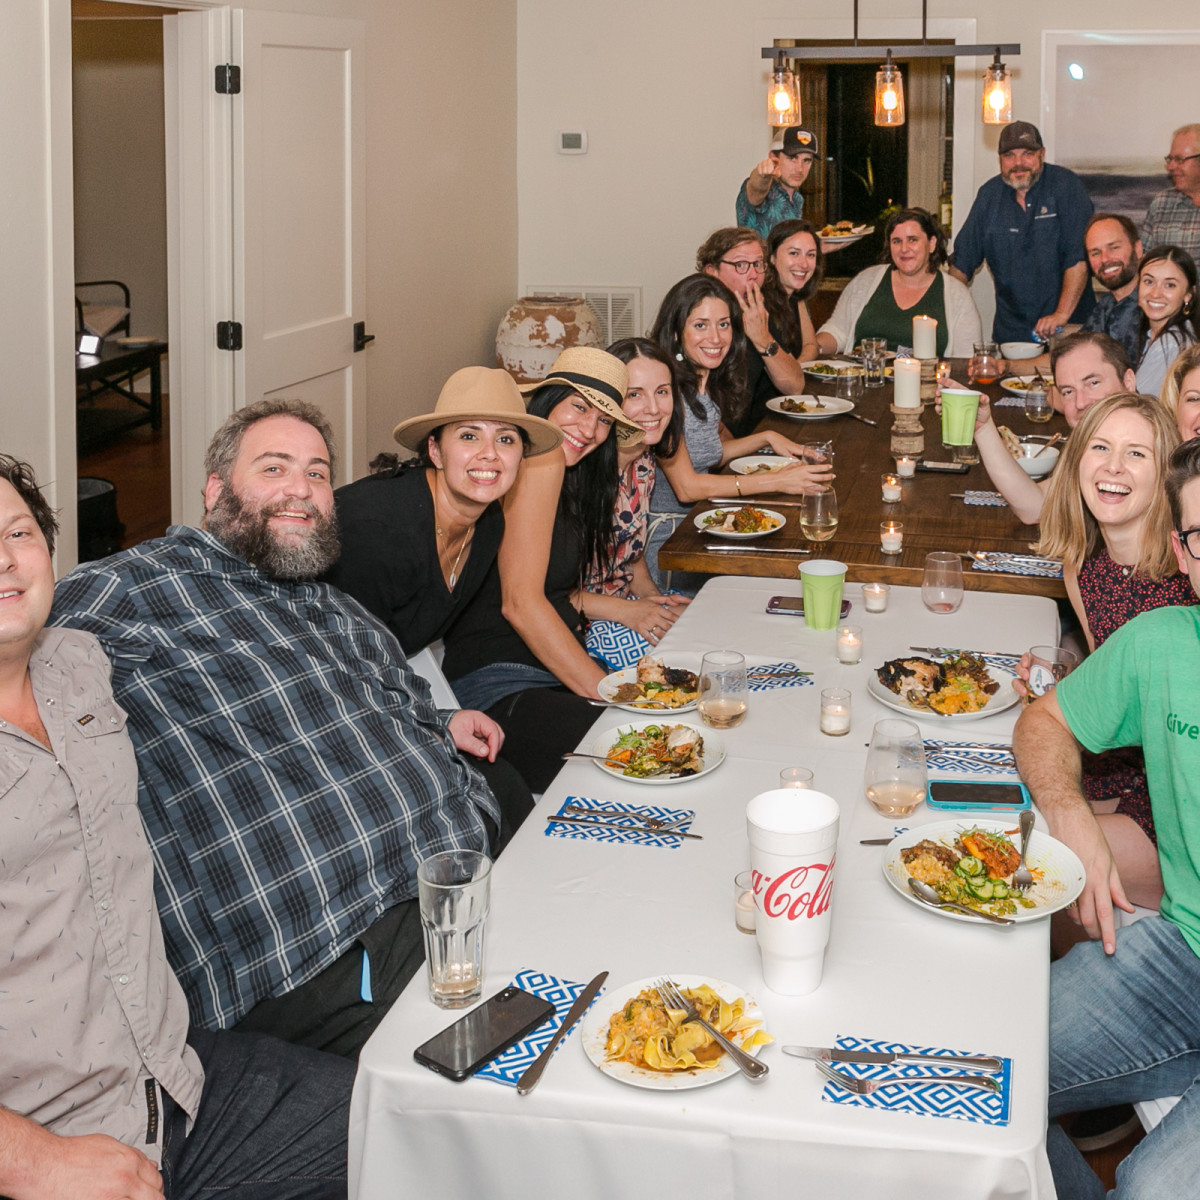 Chris Shepherd cookbook party group shot